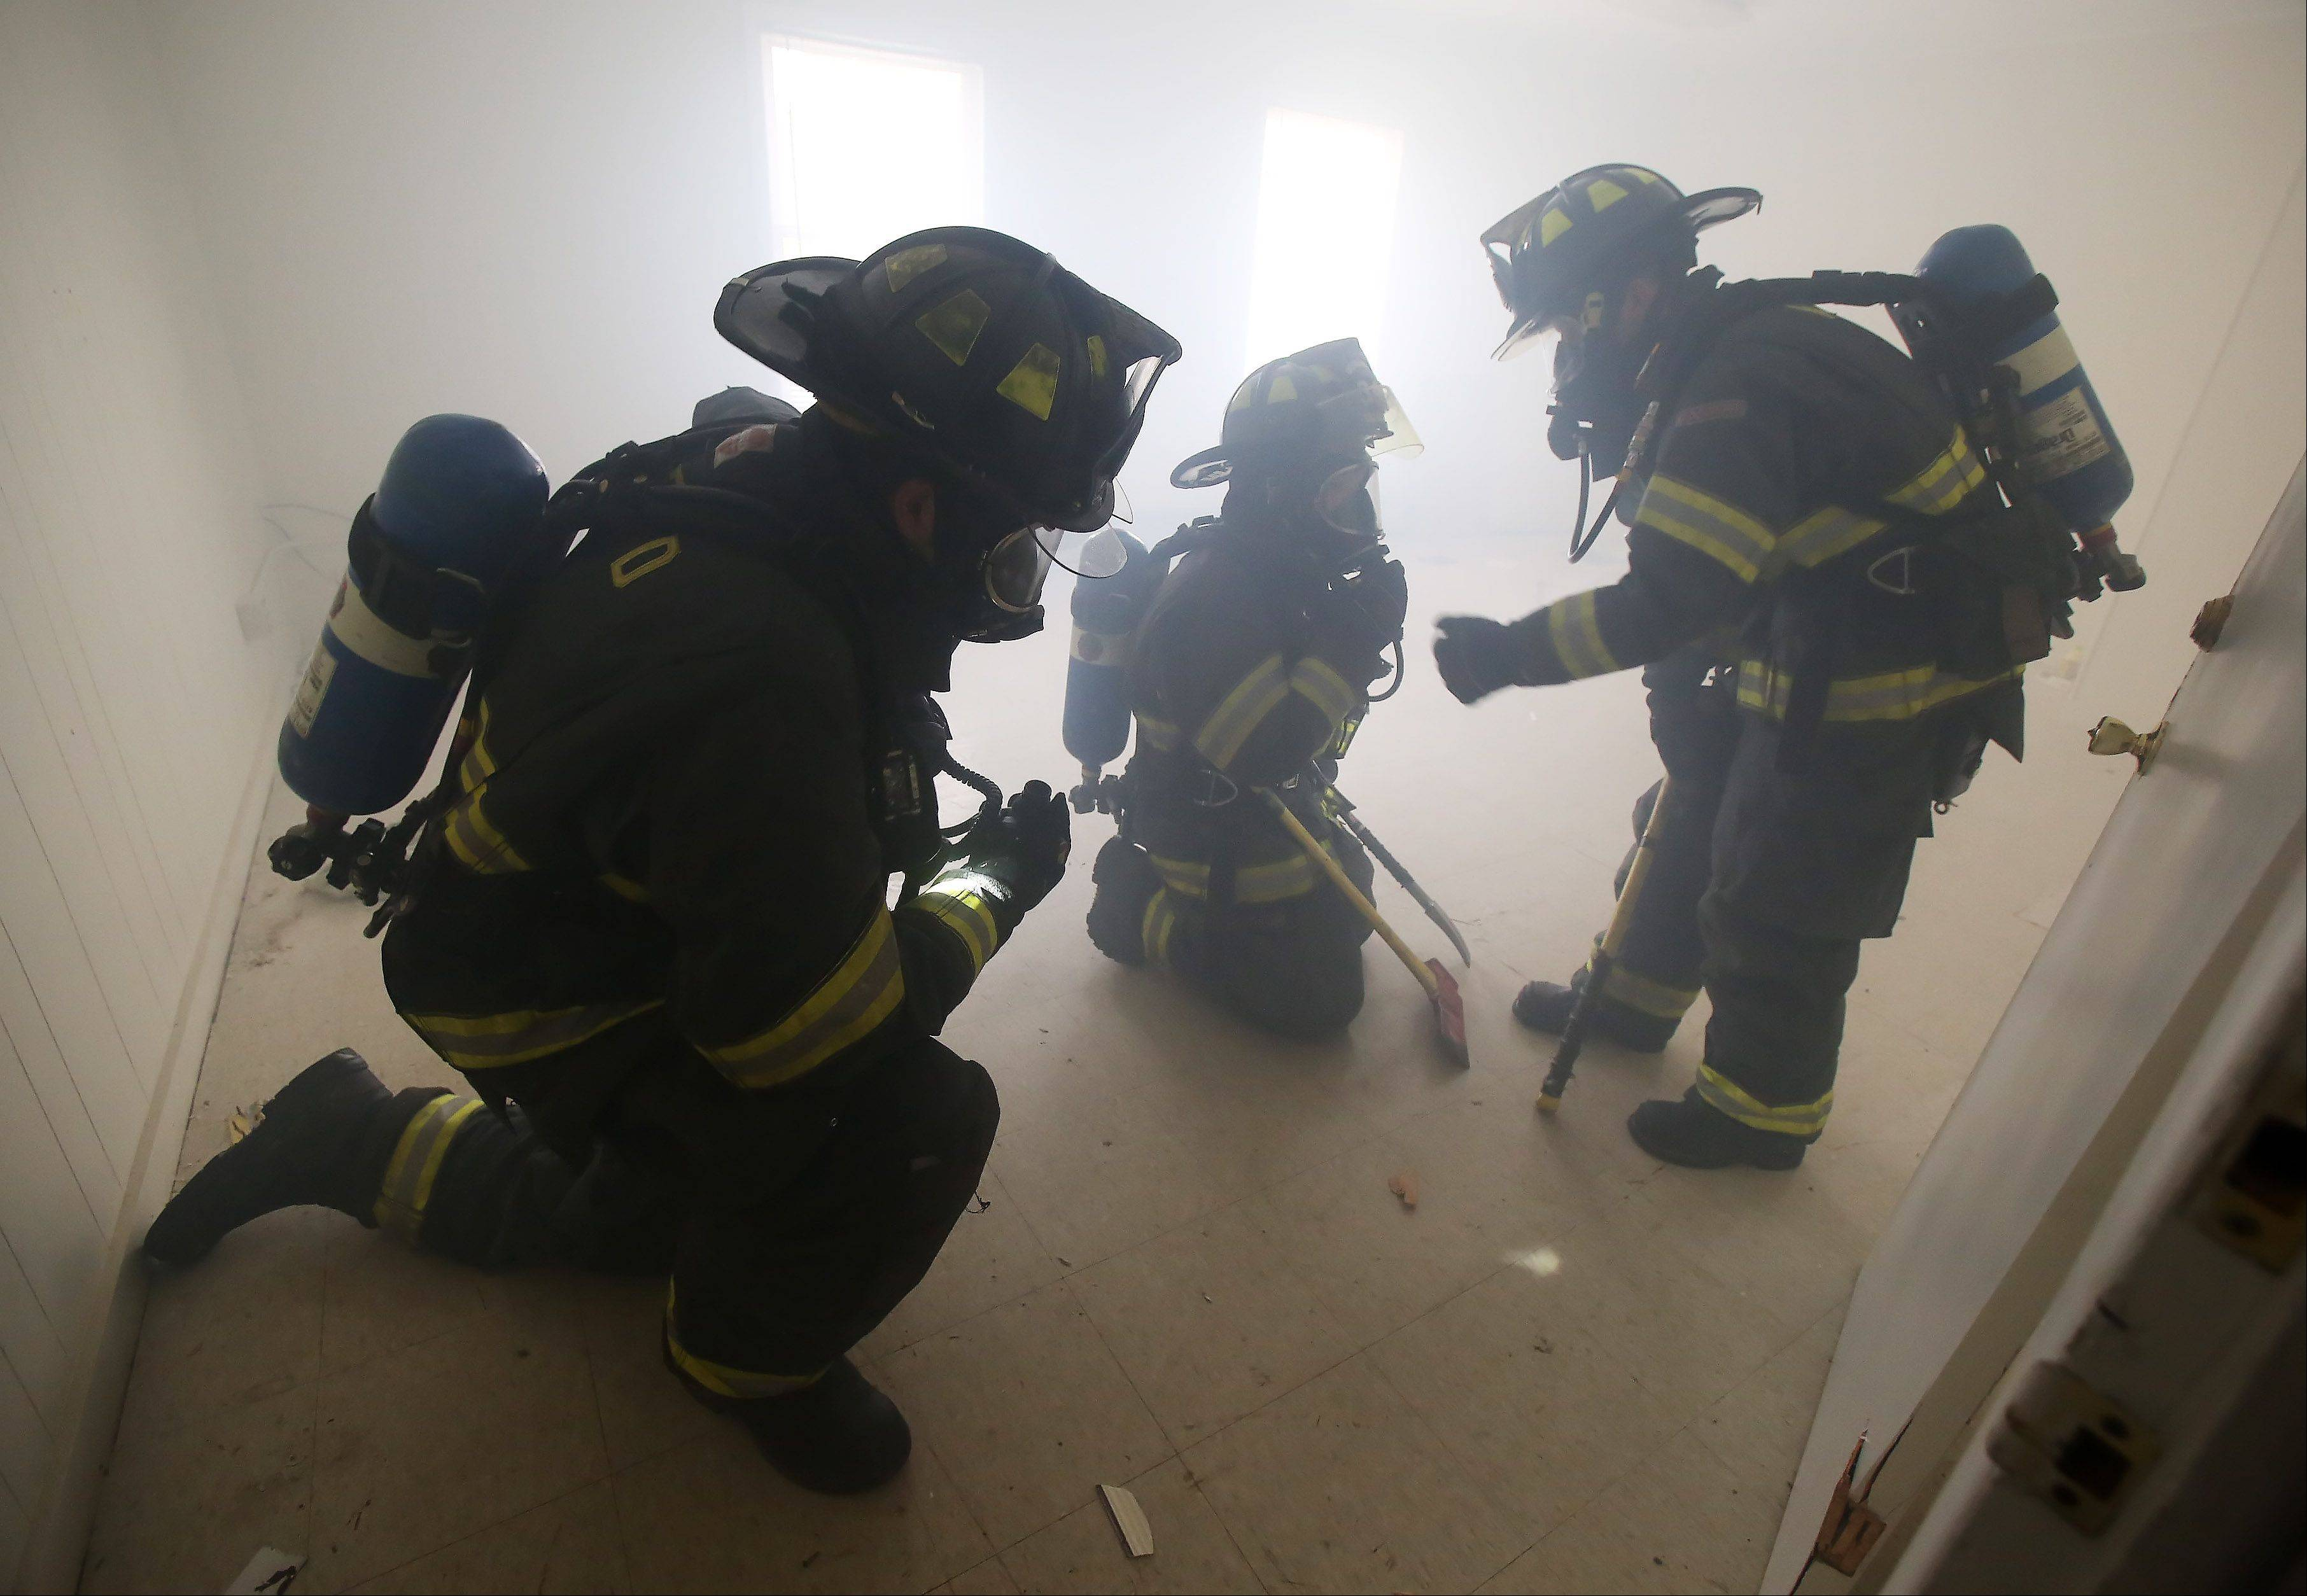 McHenry Township Fire Protection District firefighters Kevin Betke, left, Lexi Chancellor and Joe Studer participate in a training exercise Tuesday using the former Lakemoor village hall. The department will be conducting training in the building this week in advance of its demolition.